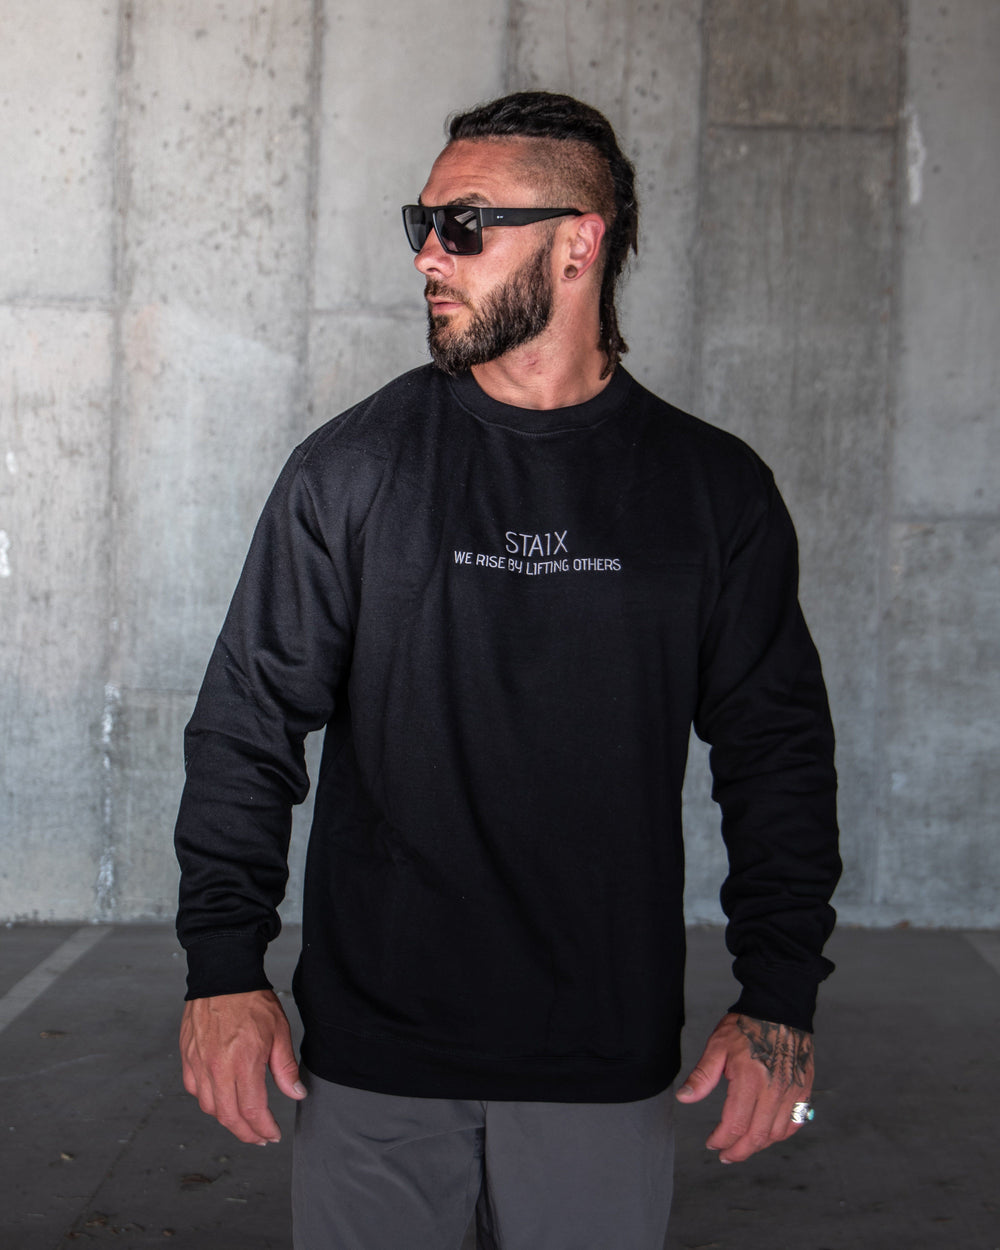 WE RISE Crew Neck - Black STAIX S